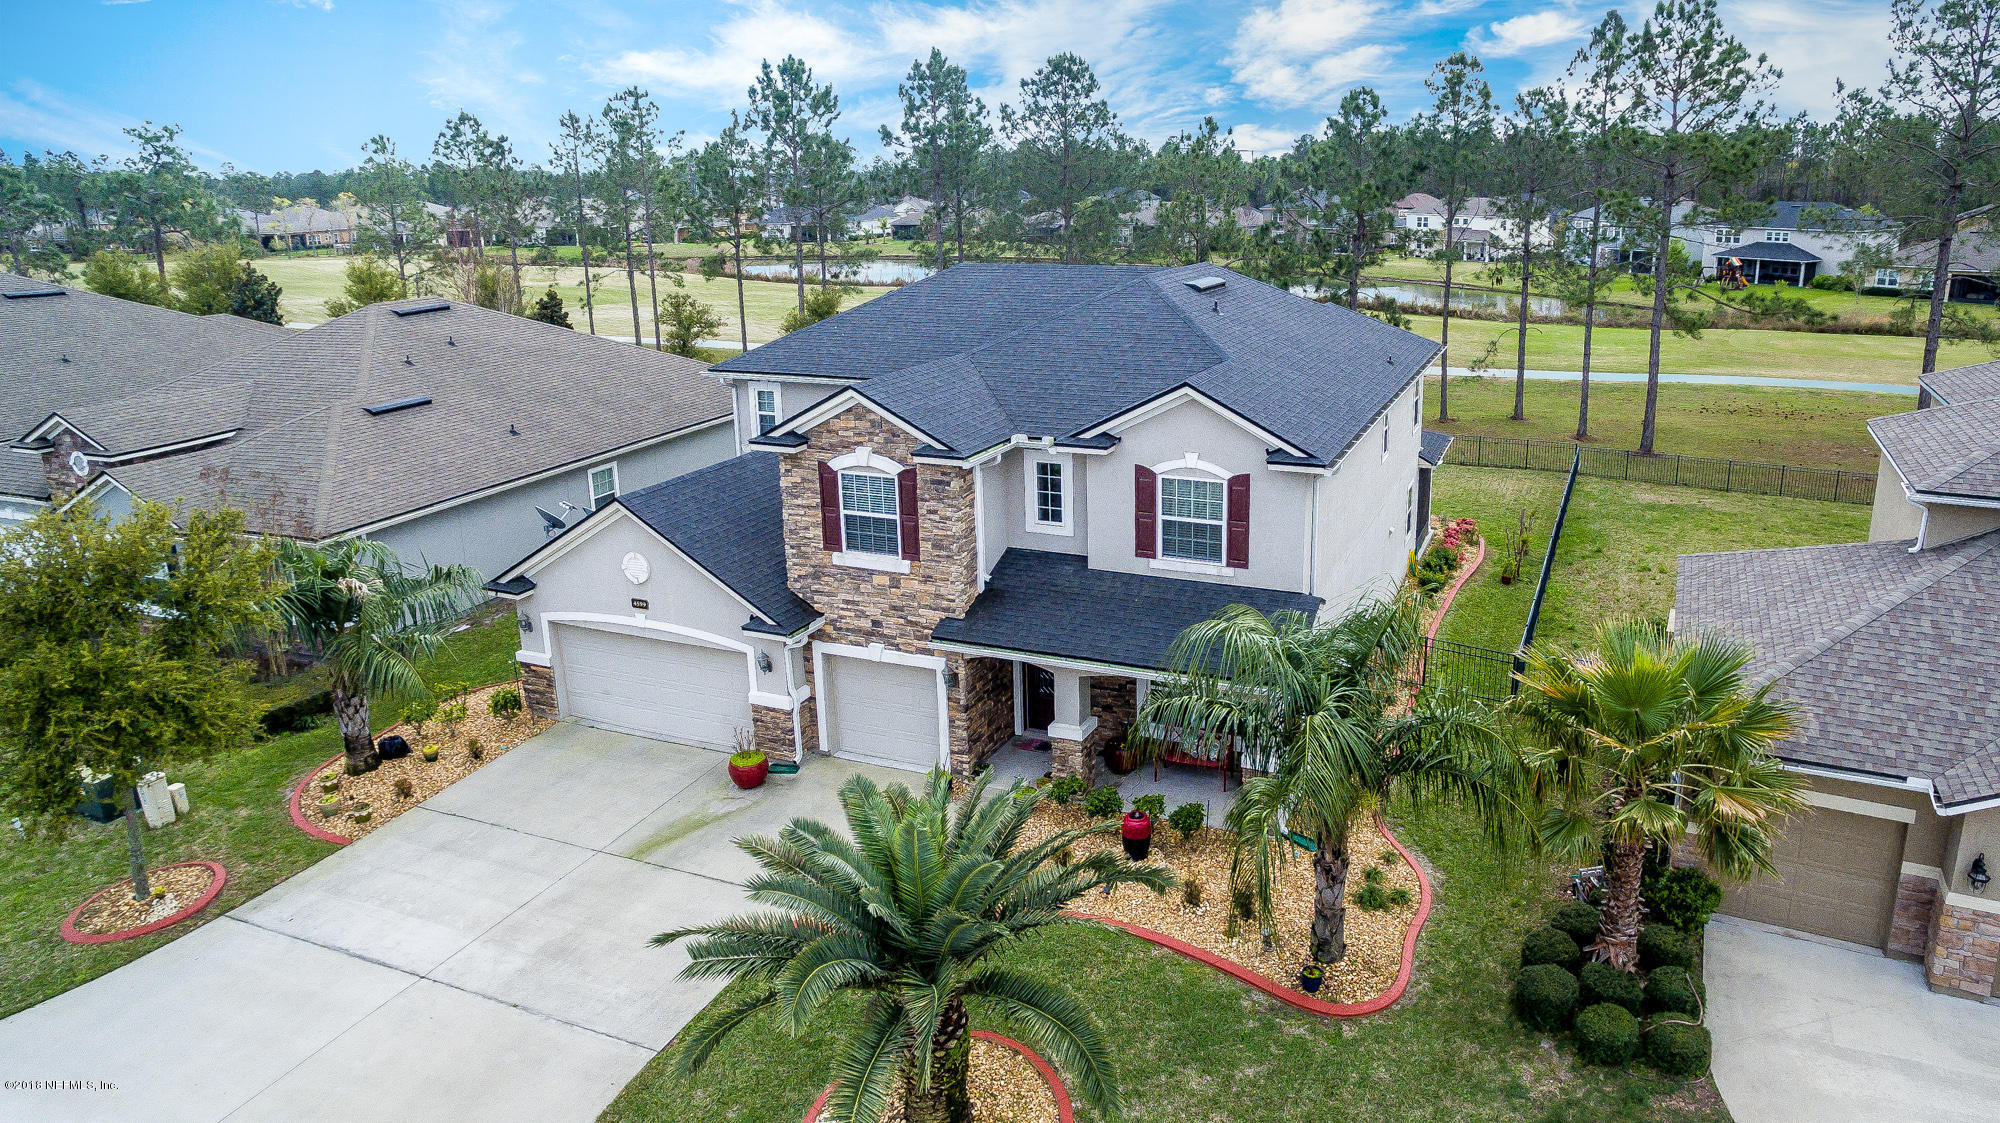 4599 GOLF BROOK, ORANGE PARK, FLORIDA 32065, 4 Bedrooms Bedrooms, ,3 BathroomsBathrooms,Residential - single family,For sale,GOLF BROOK,953582